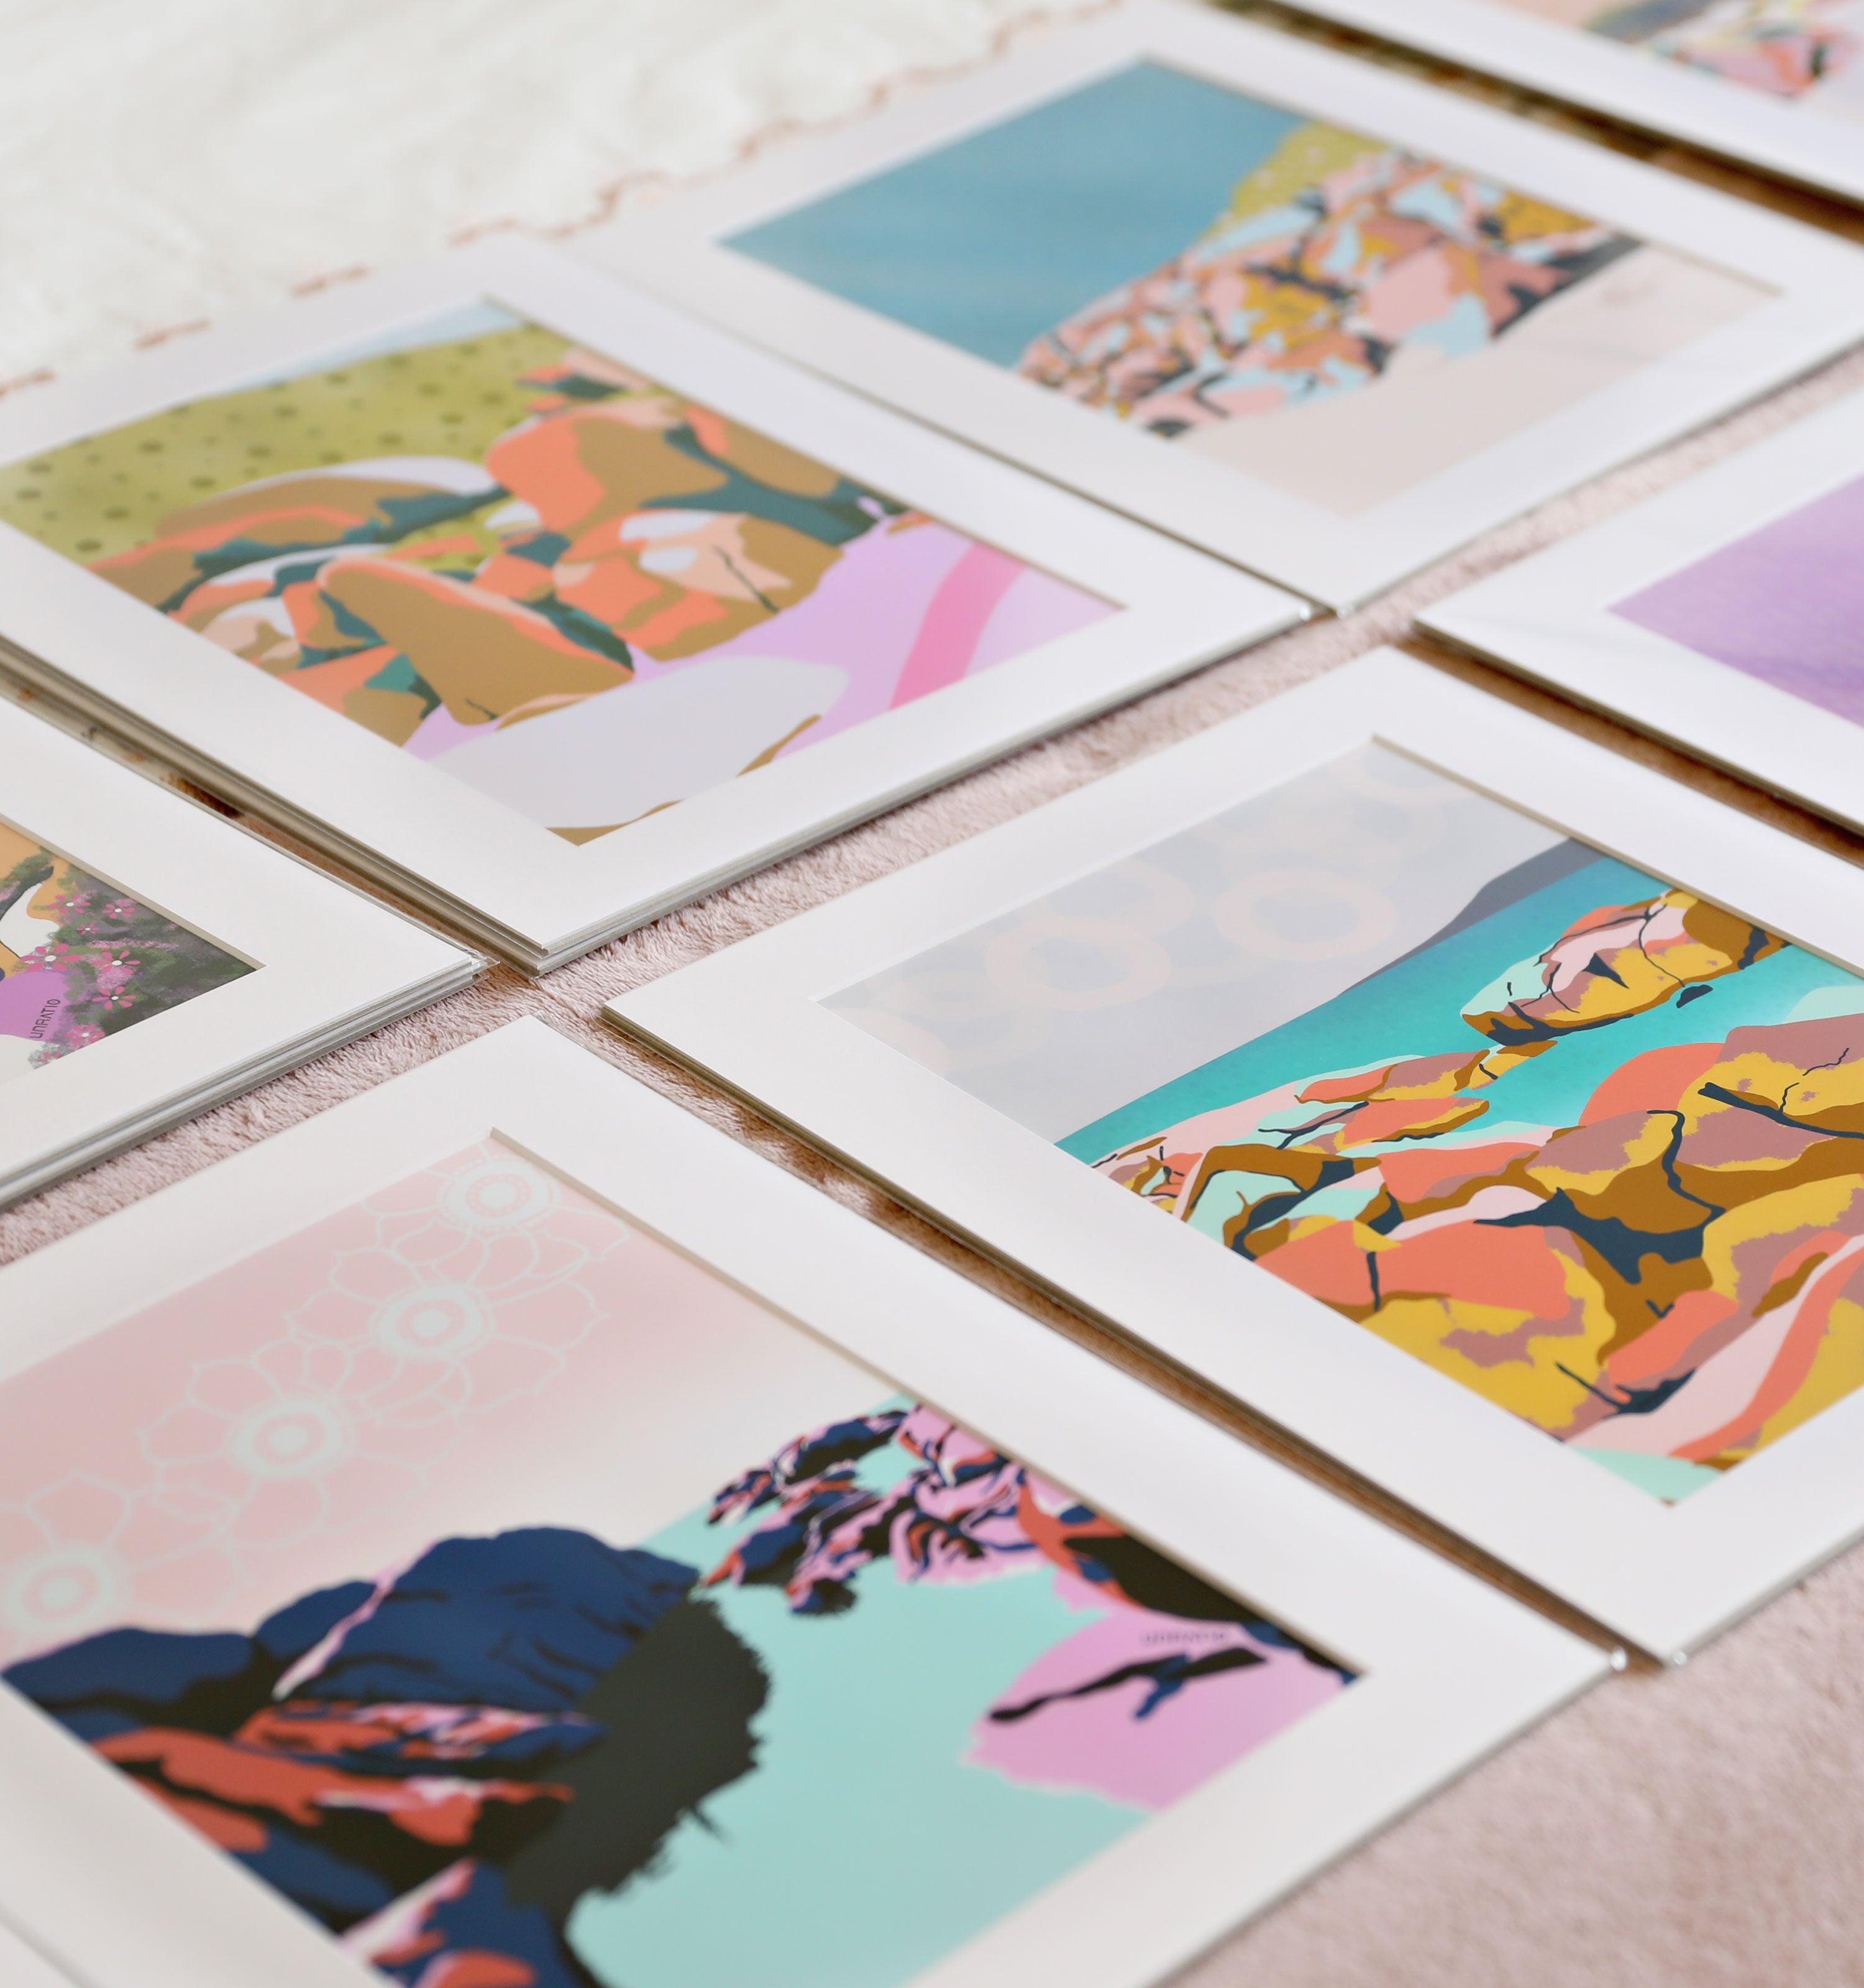 Collection of Australian illustrations available for wholesale purchase